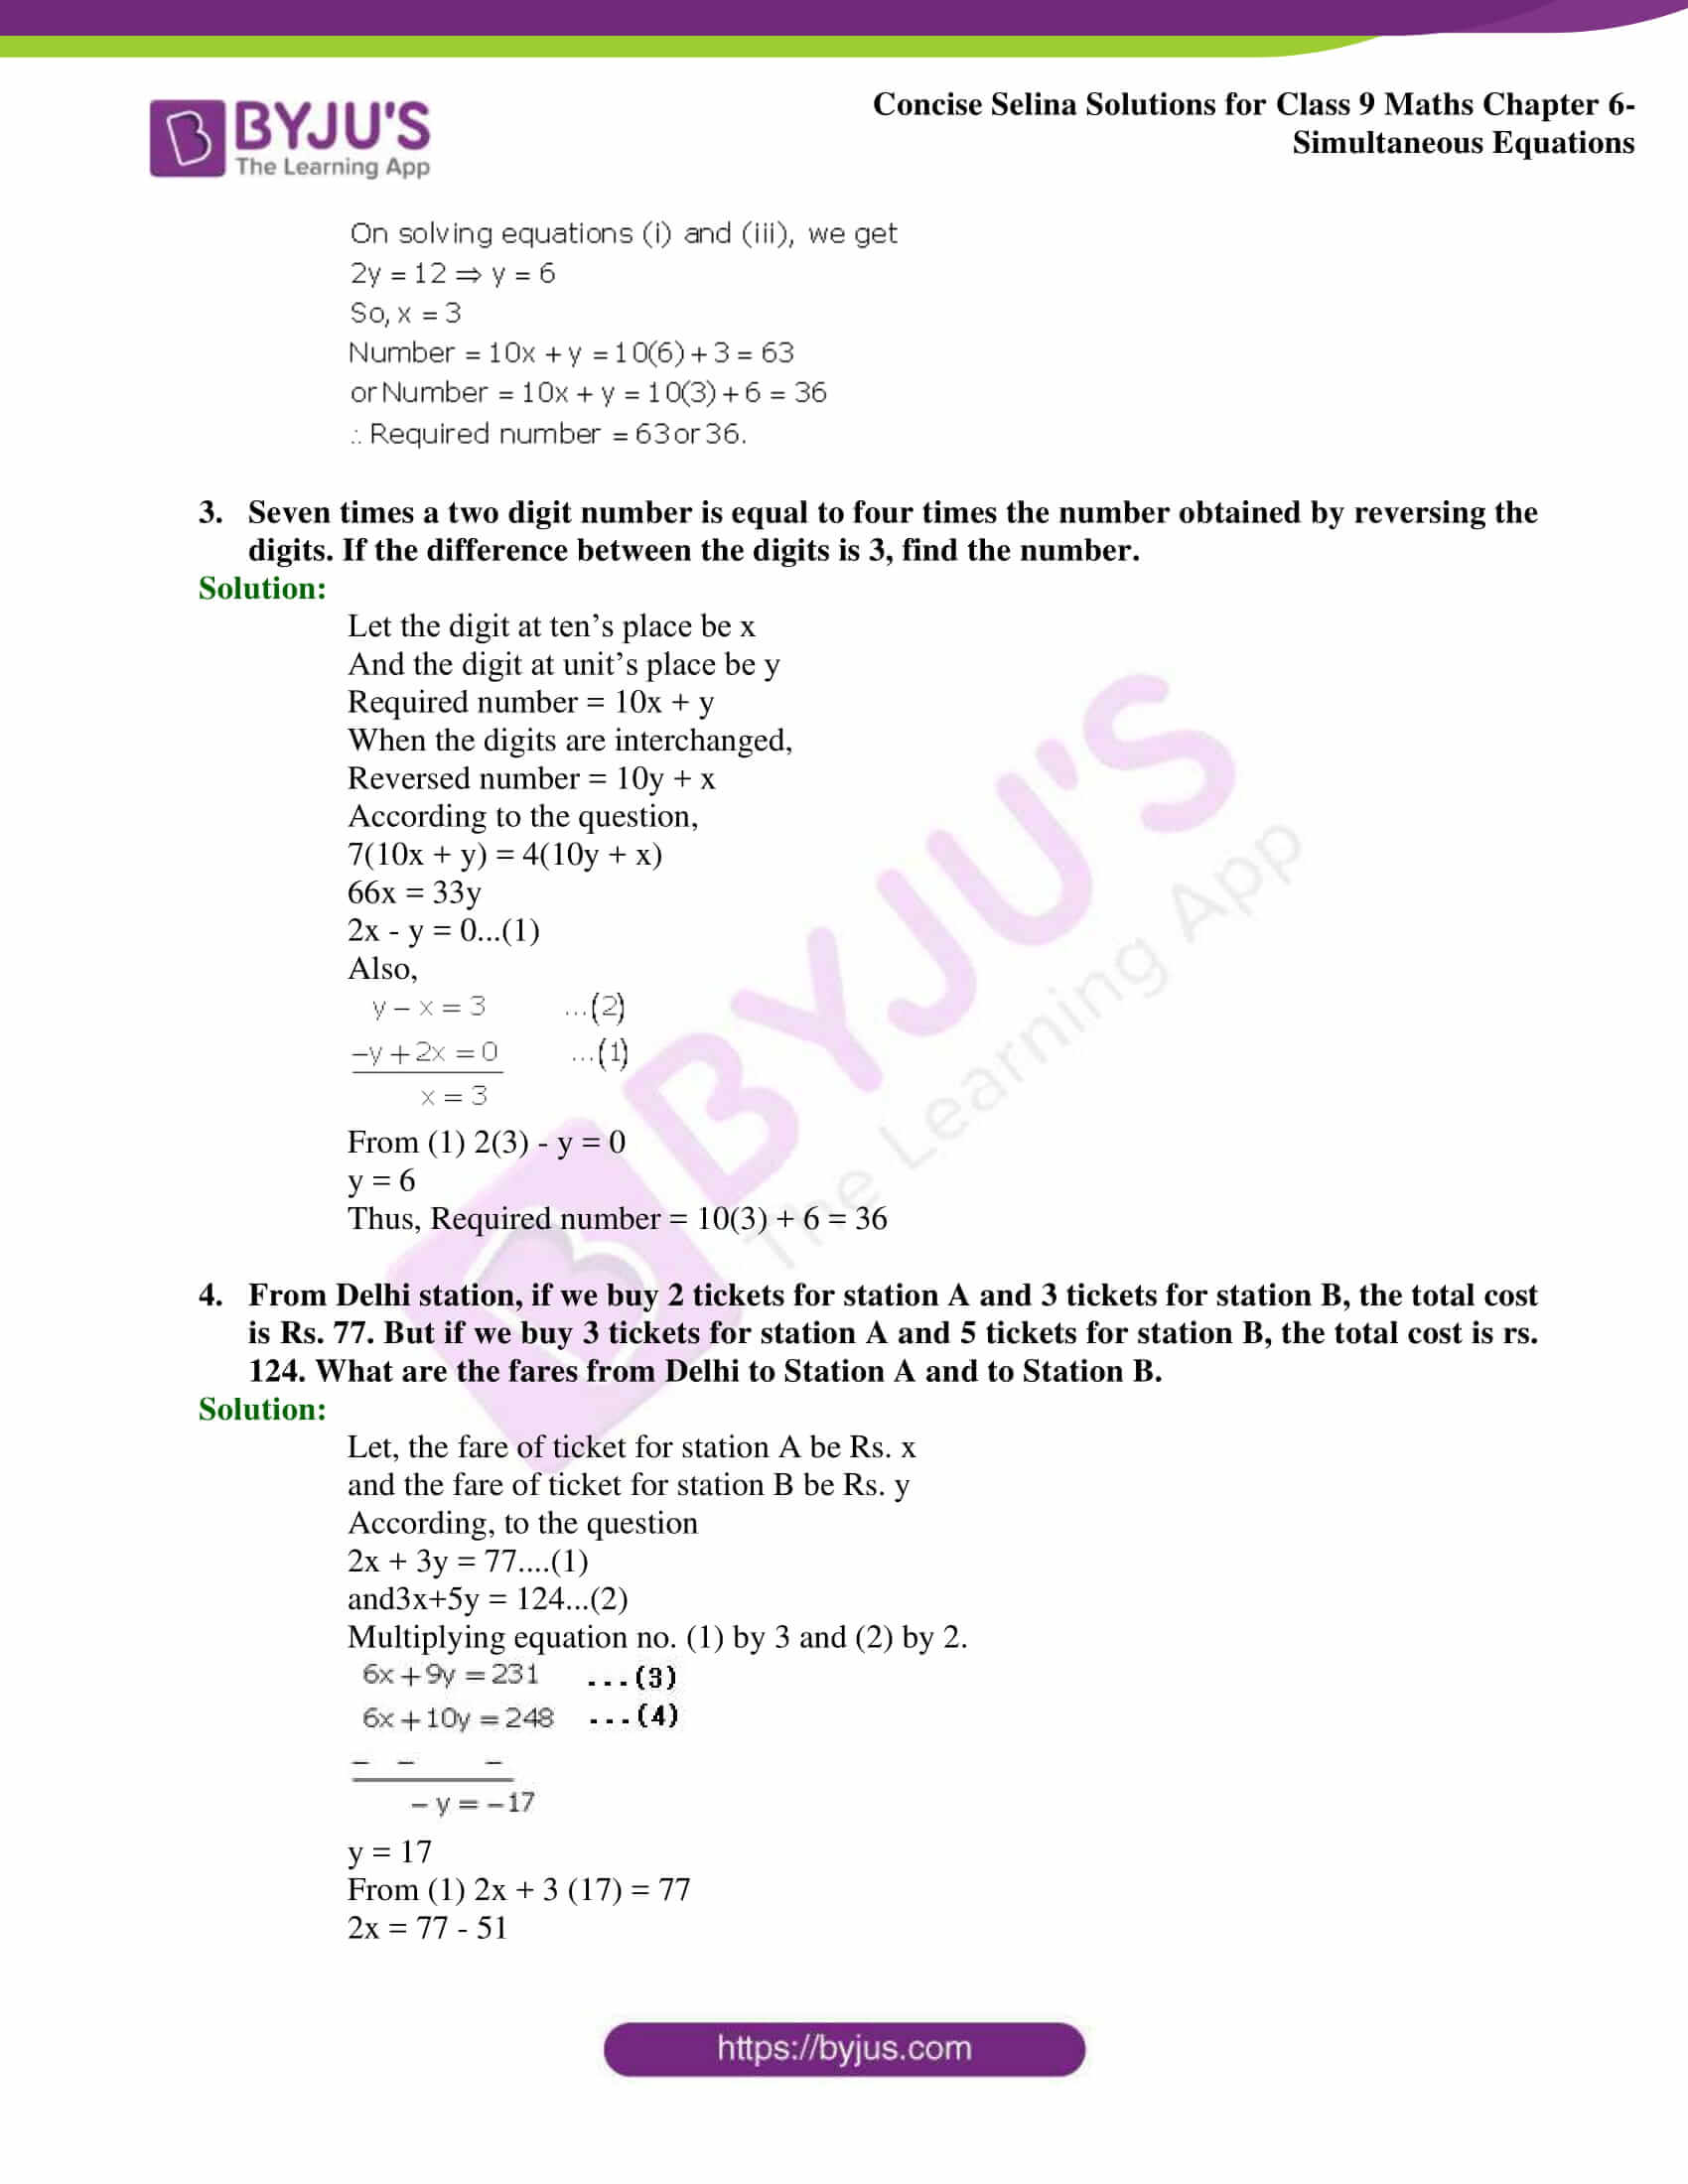 Selina Solutions Class 9 Maths Chapter 6 Simultaneous Equations part 54